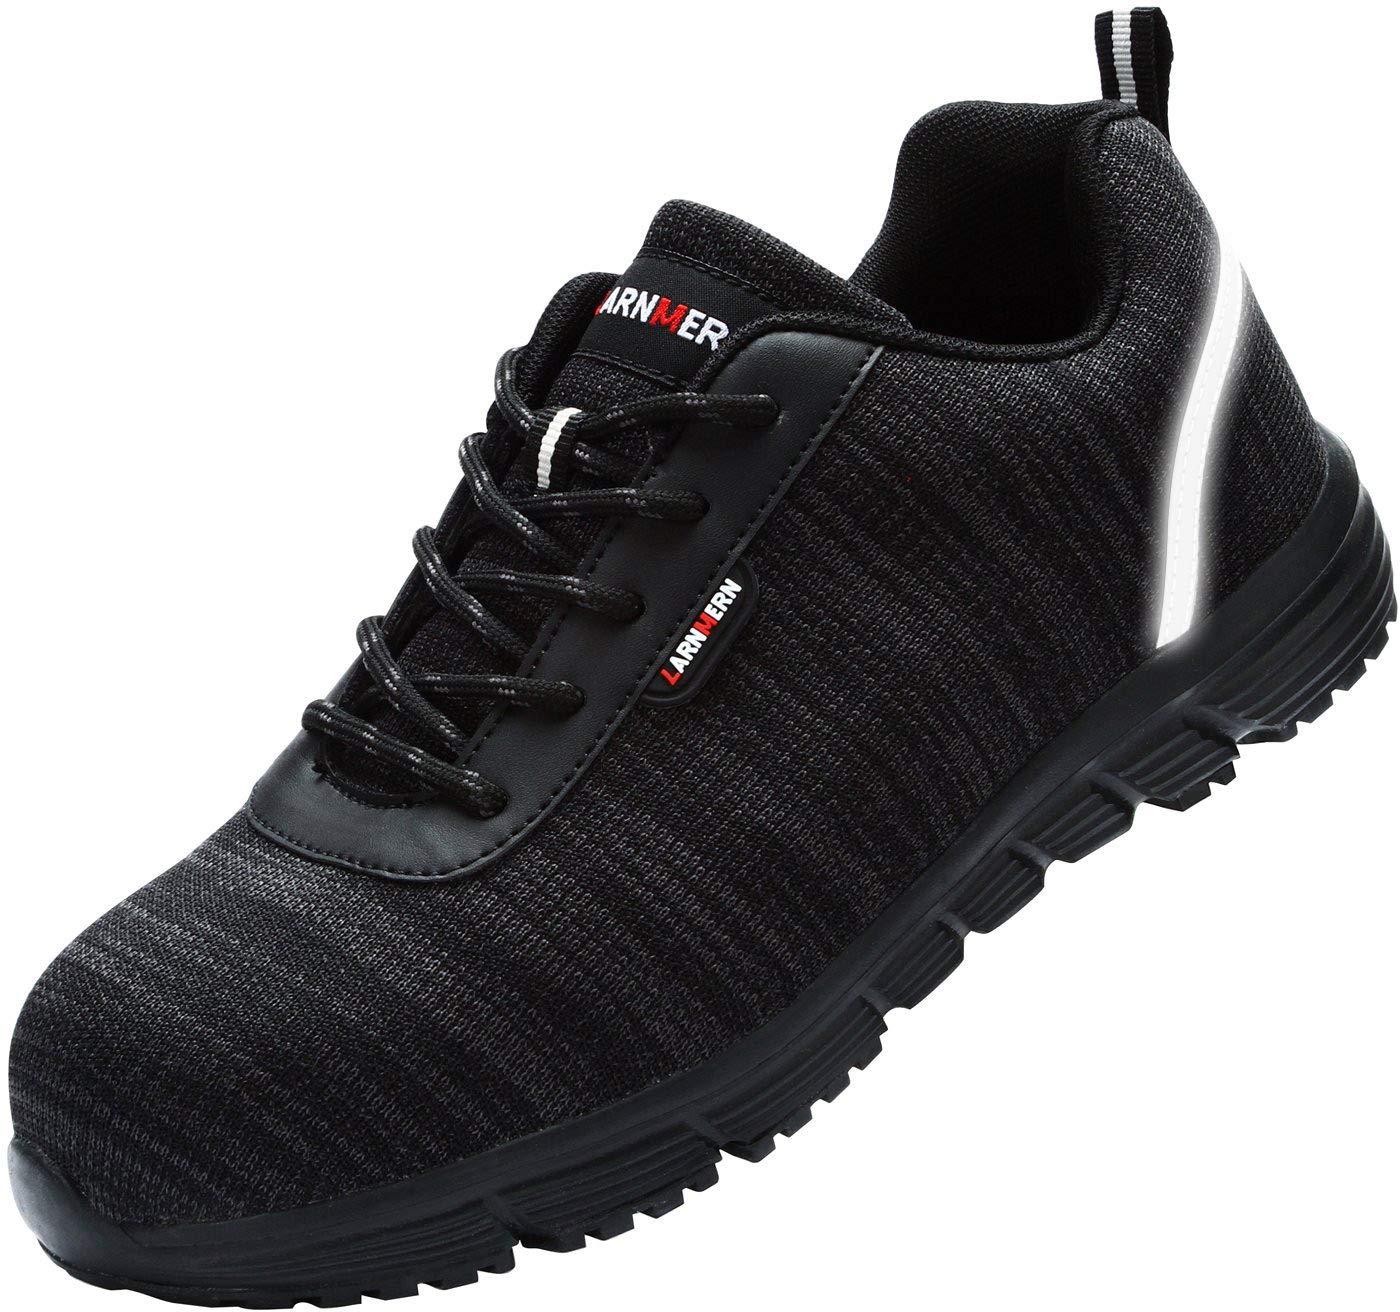 LARNMERN Safety Steel Toe Work Shoes, S1P, SRC Lightweight and Breathable Construction Industrial Shoes